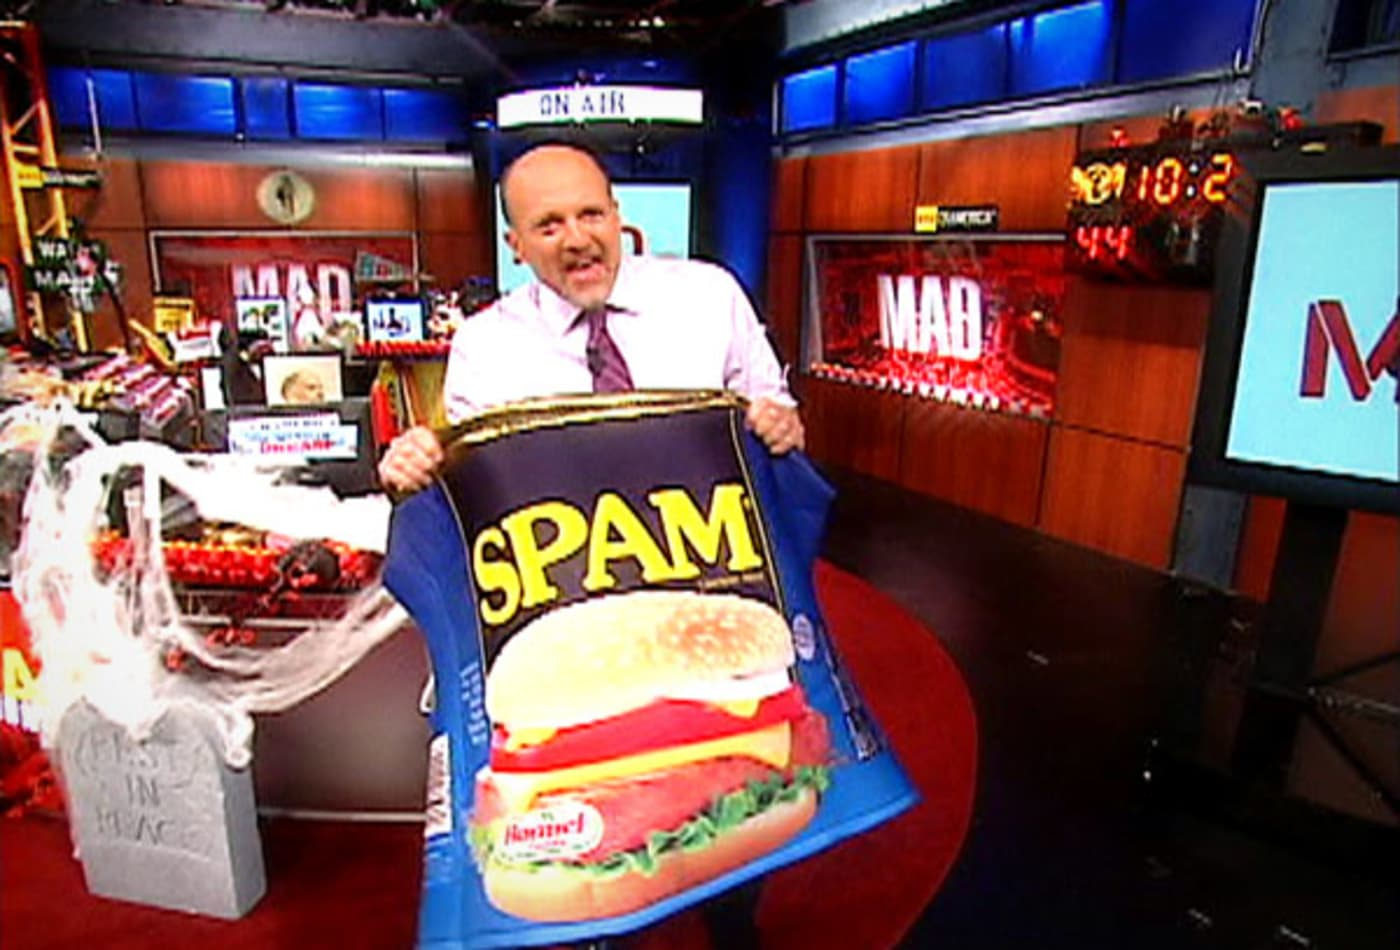 Spam-Craziest-Costume-Ideas-Jim-Cramer.jpg